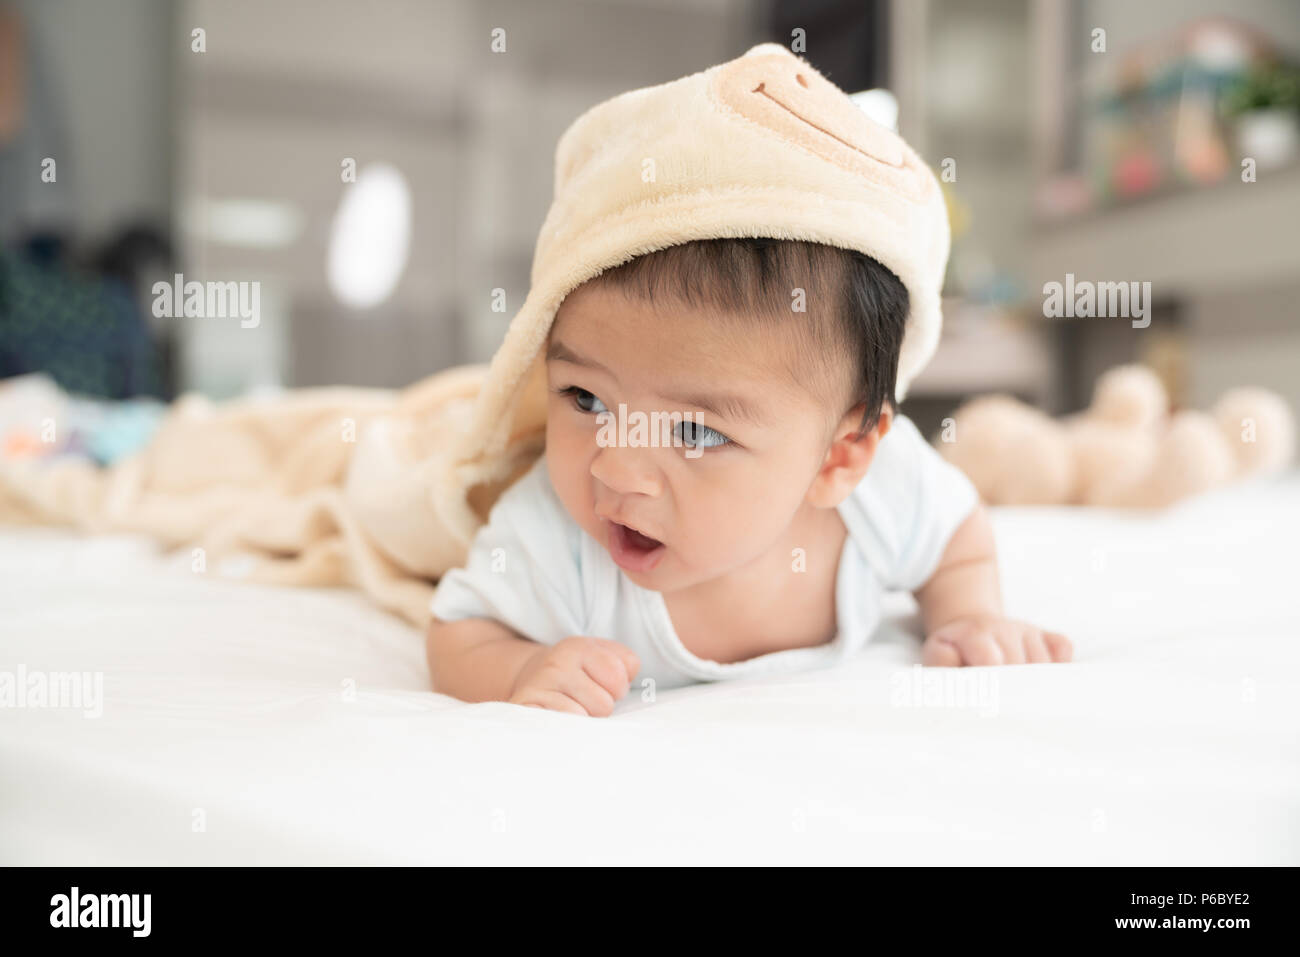 Portrait of a crawling baby on the bed in her room, Adorable baby boy in white sunny bedroom, Newborn child relaxing in bed, Nursery for young childre - Stock Image